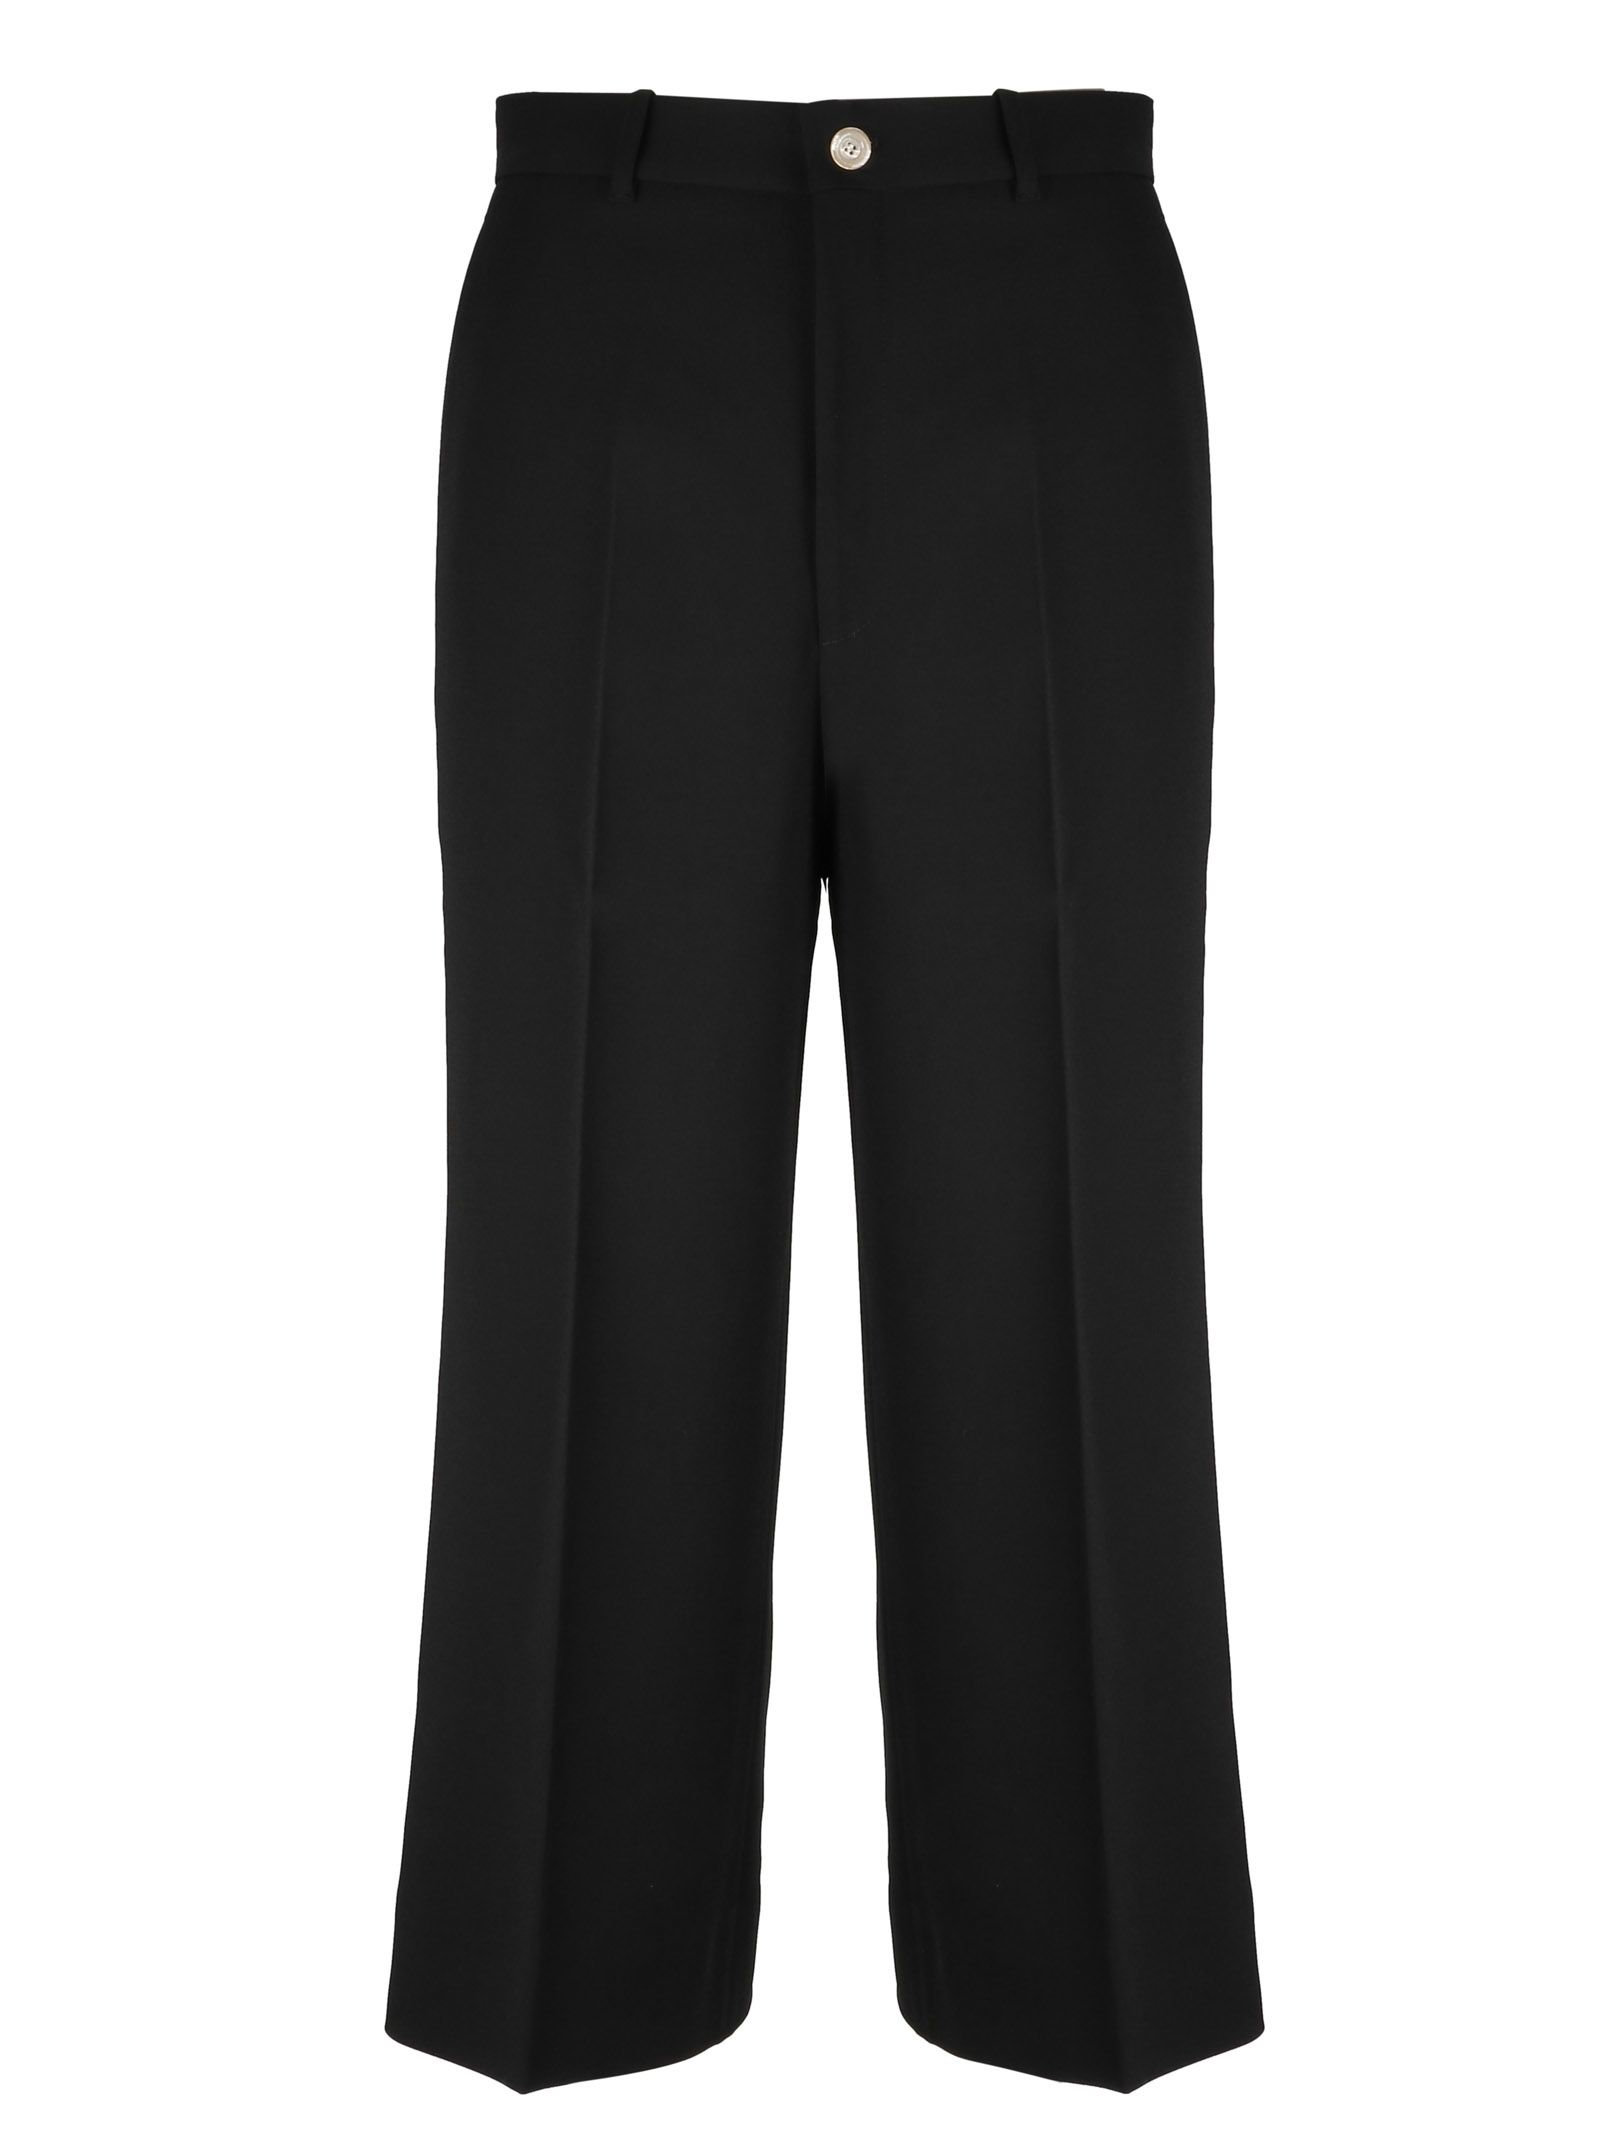 FLARED TROUSERS from Italist.com